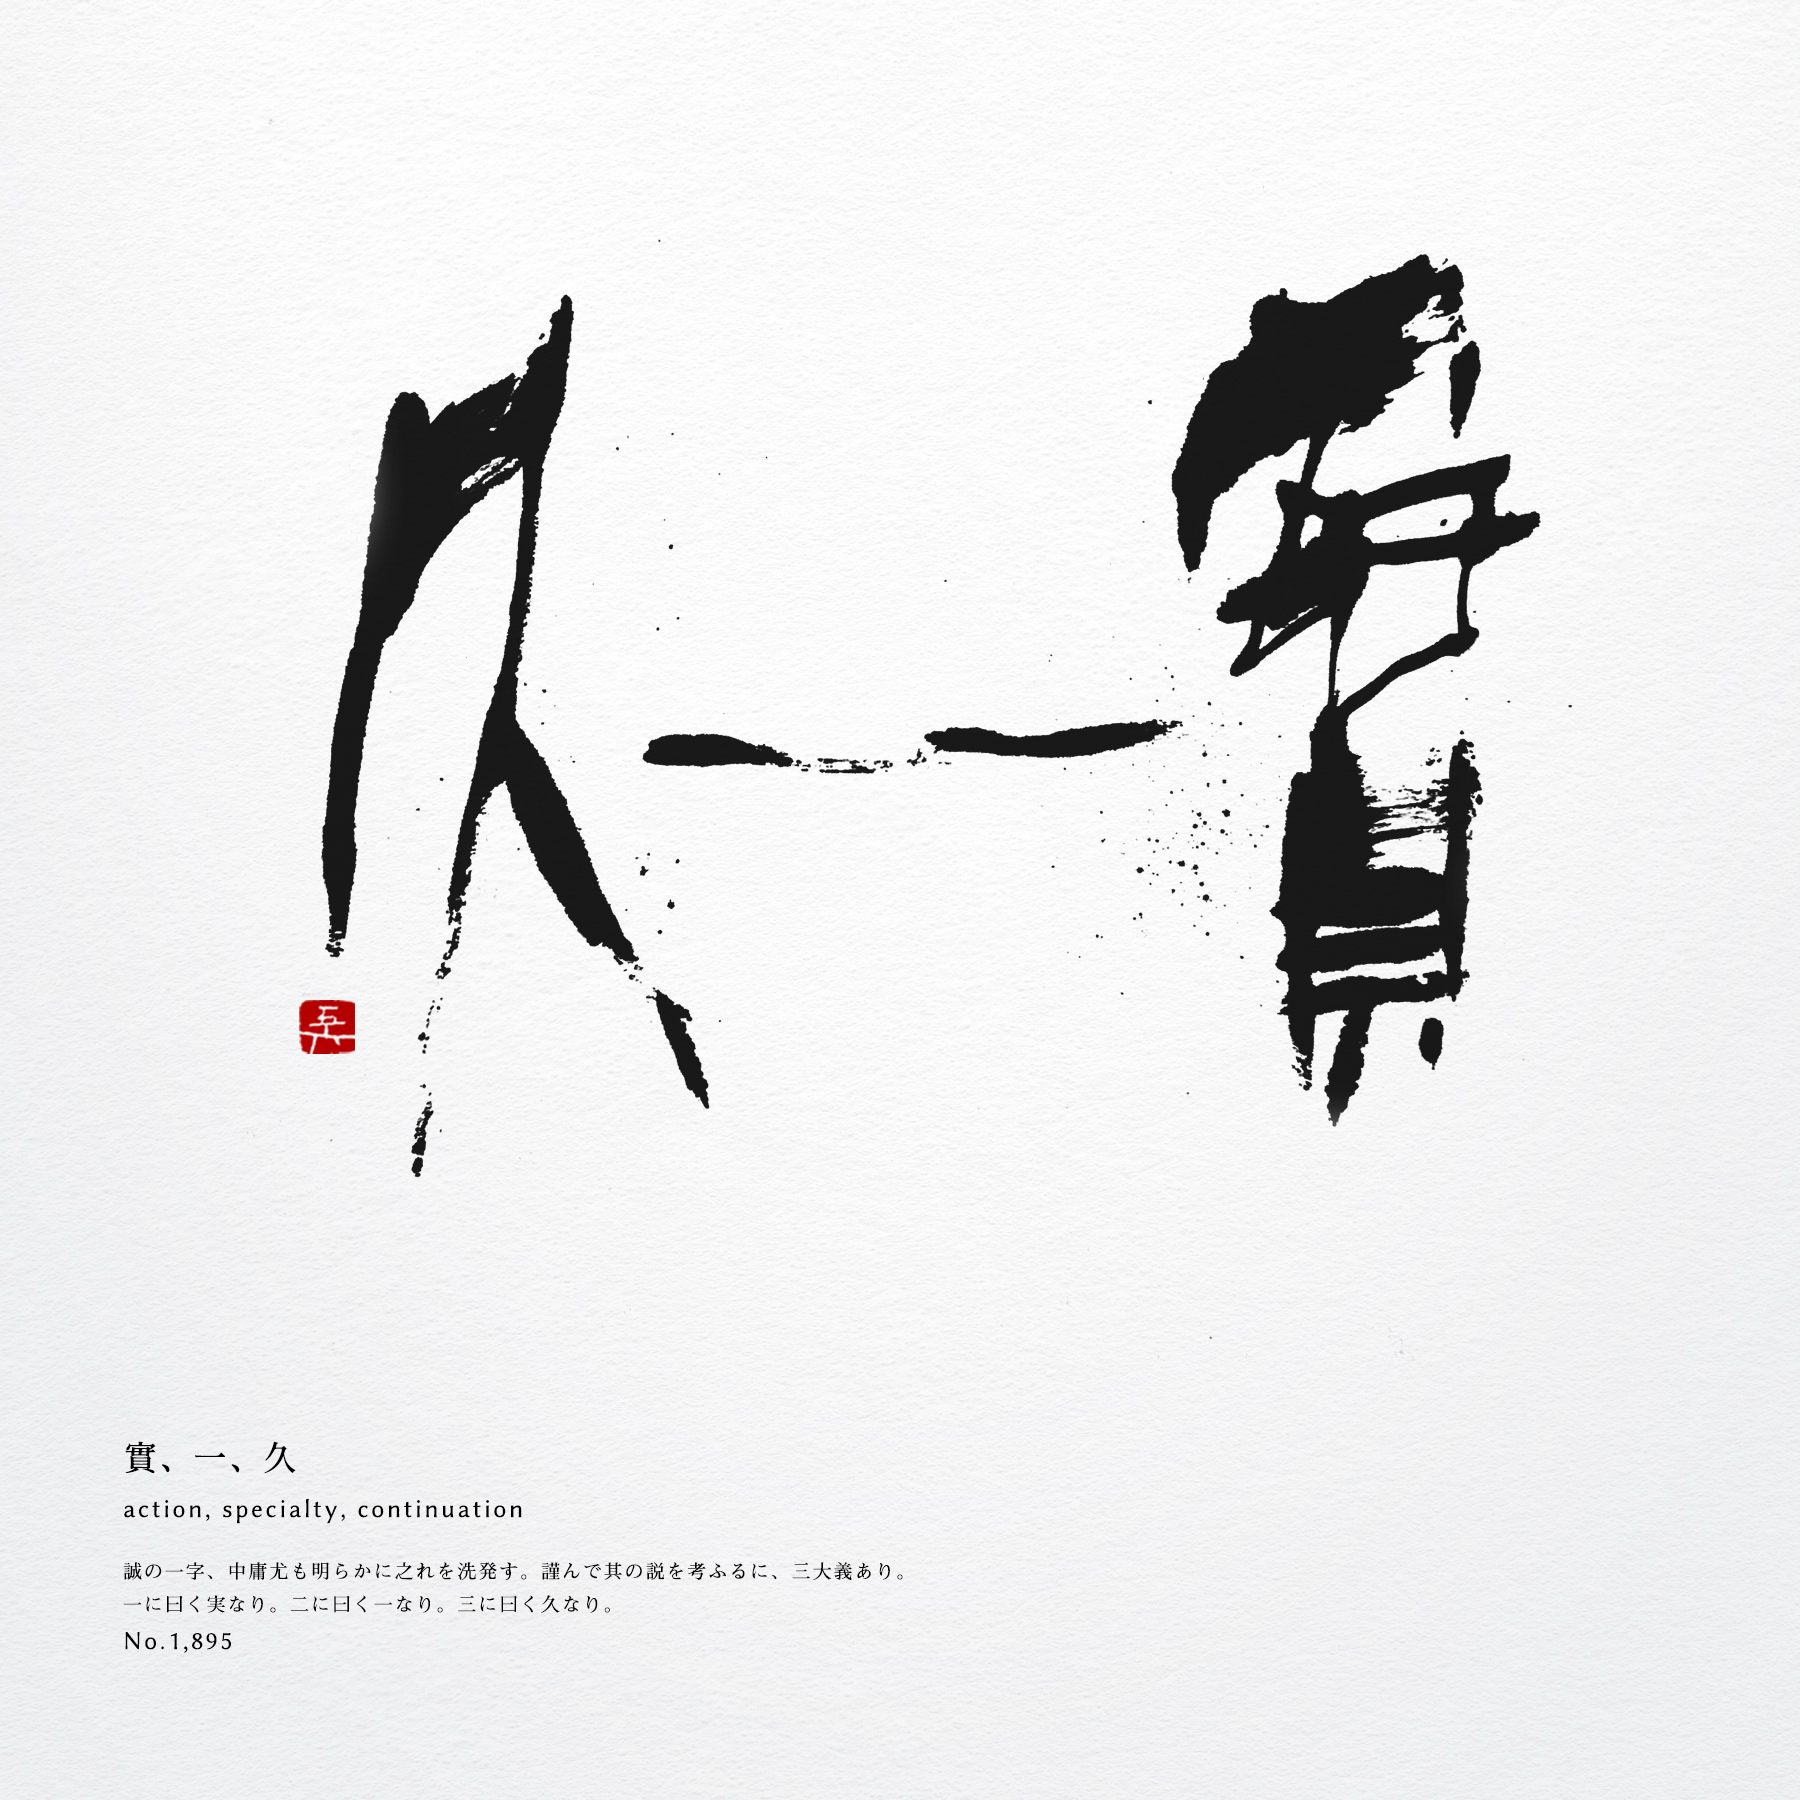 實、一、久 | action, specialty, continuation 書道作品 japaneseart japanese calligraphy 書家 田川悟郎 Goroh Tagawa